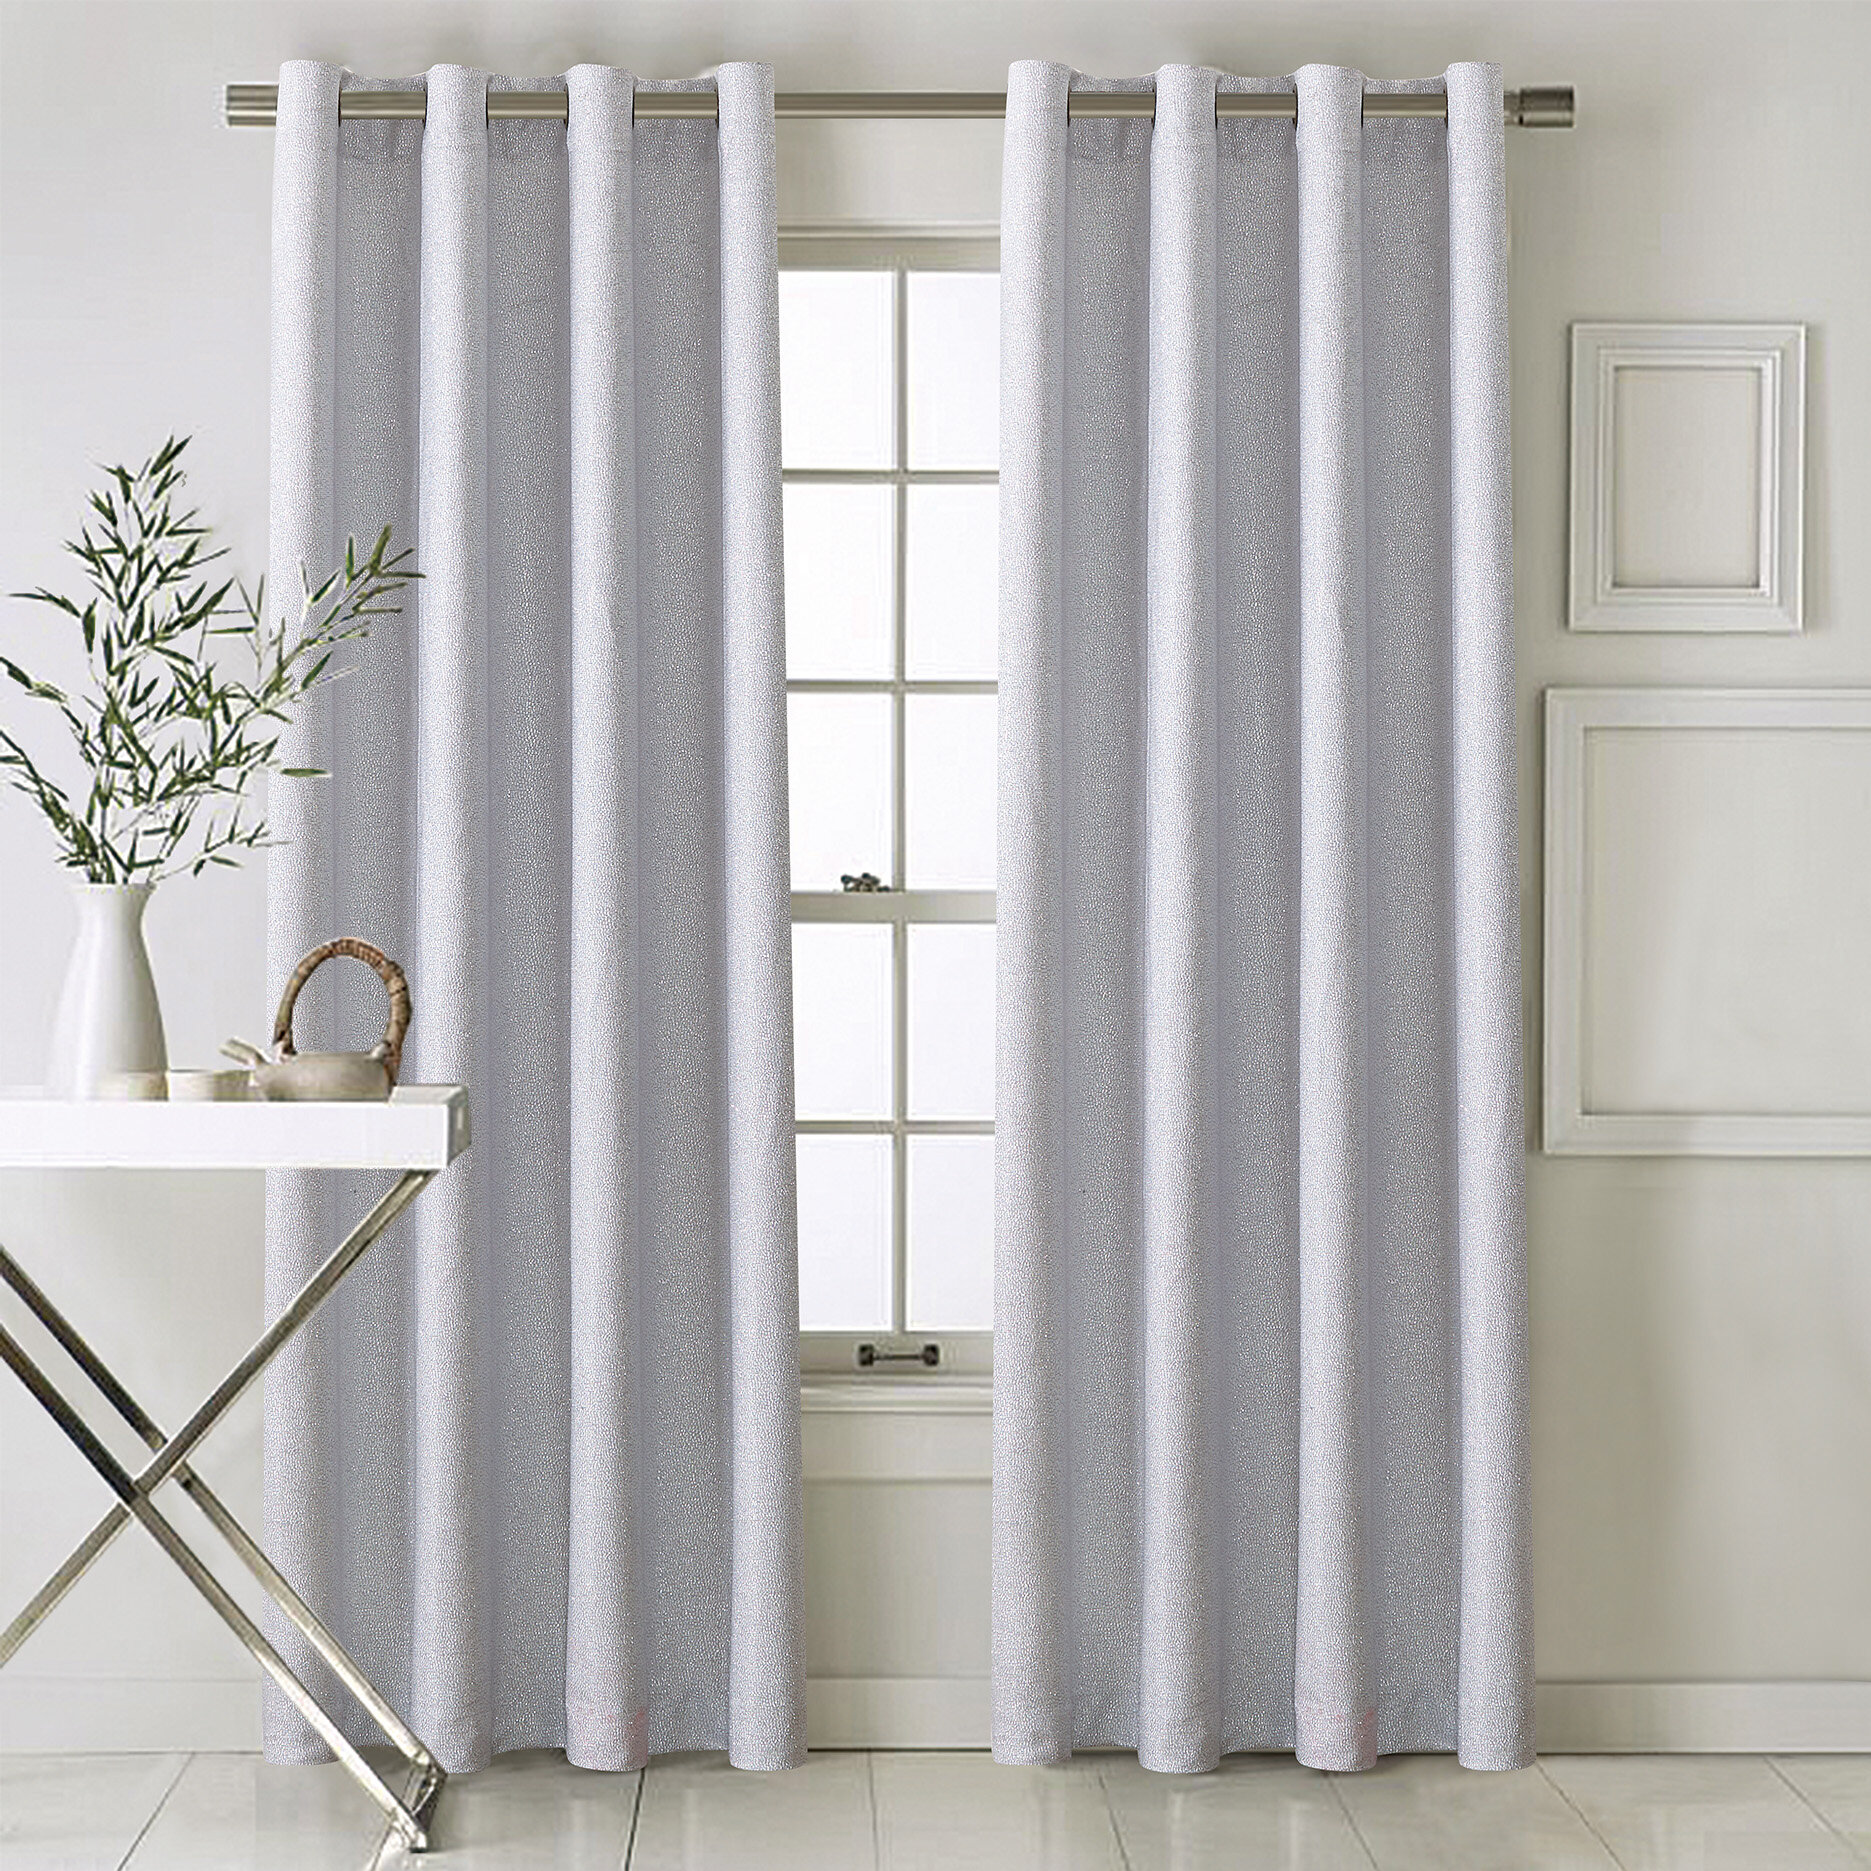 l voile p panel extra wide x grey in elements sheer diamond drapes curtains grommet window w teal curtain